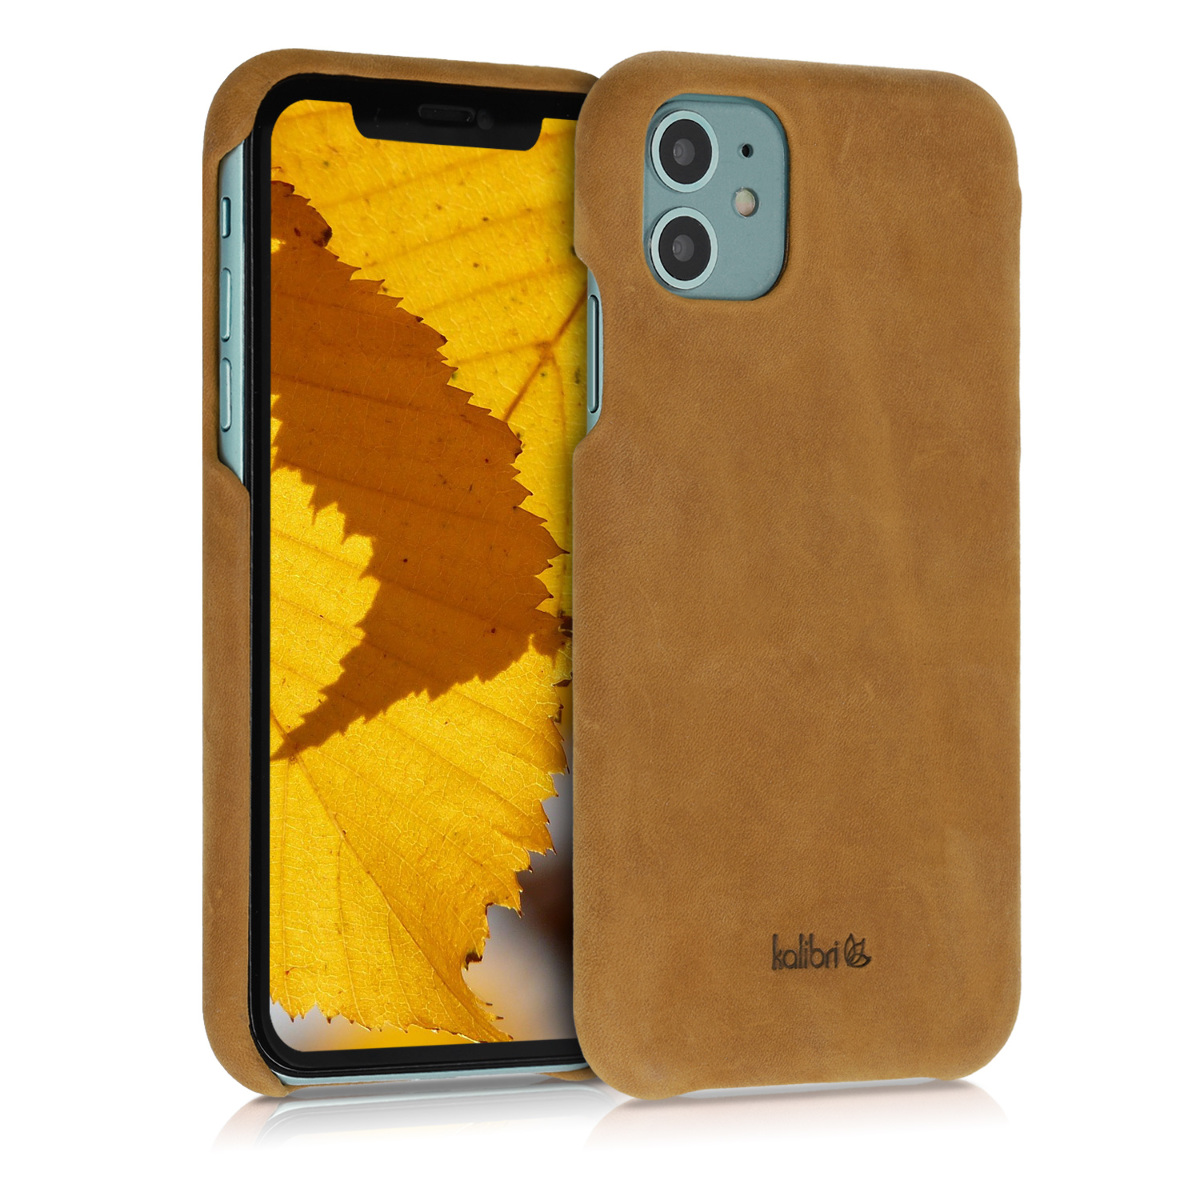 Kalibri Σκληρή Δερμάτινη Θήκη Apple iPhone 11 - Smooth Genuine Leather Hard Case - Light Brown (49737.24)